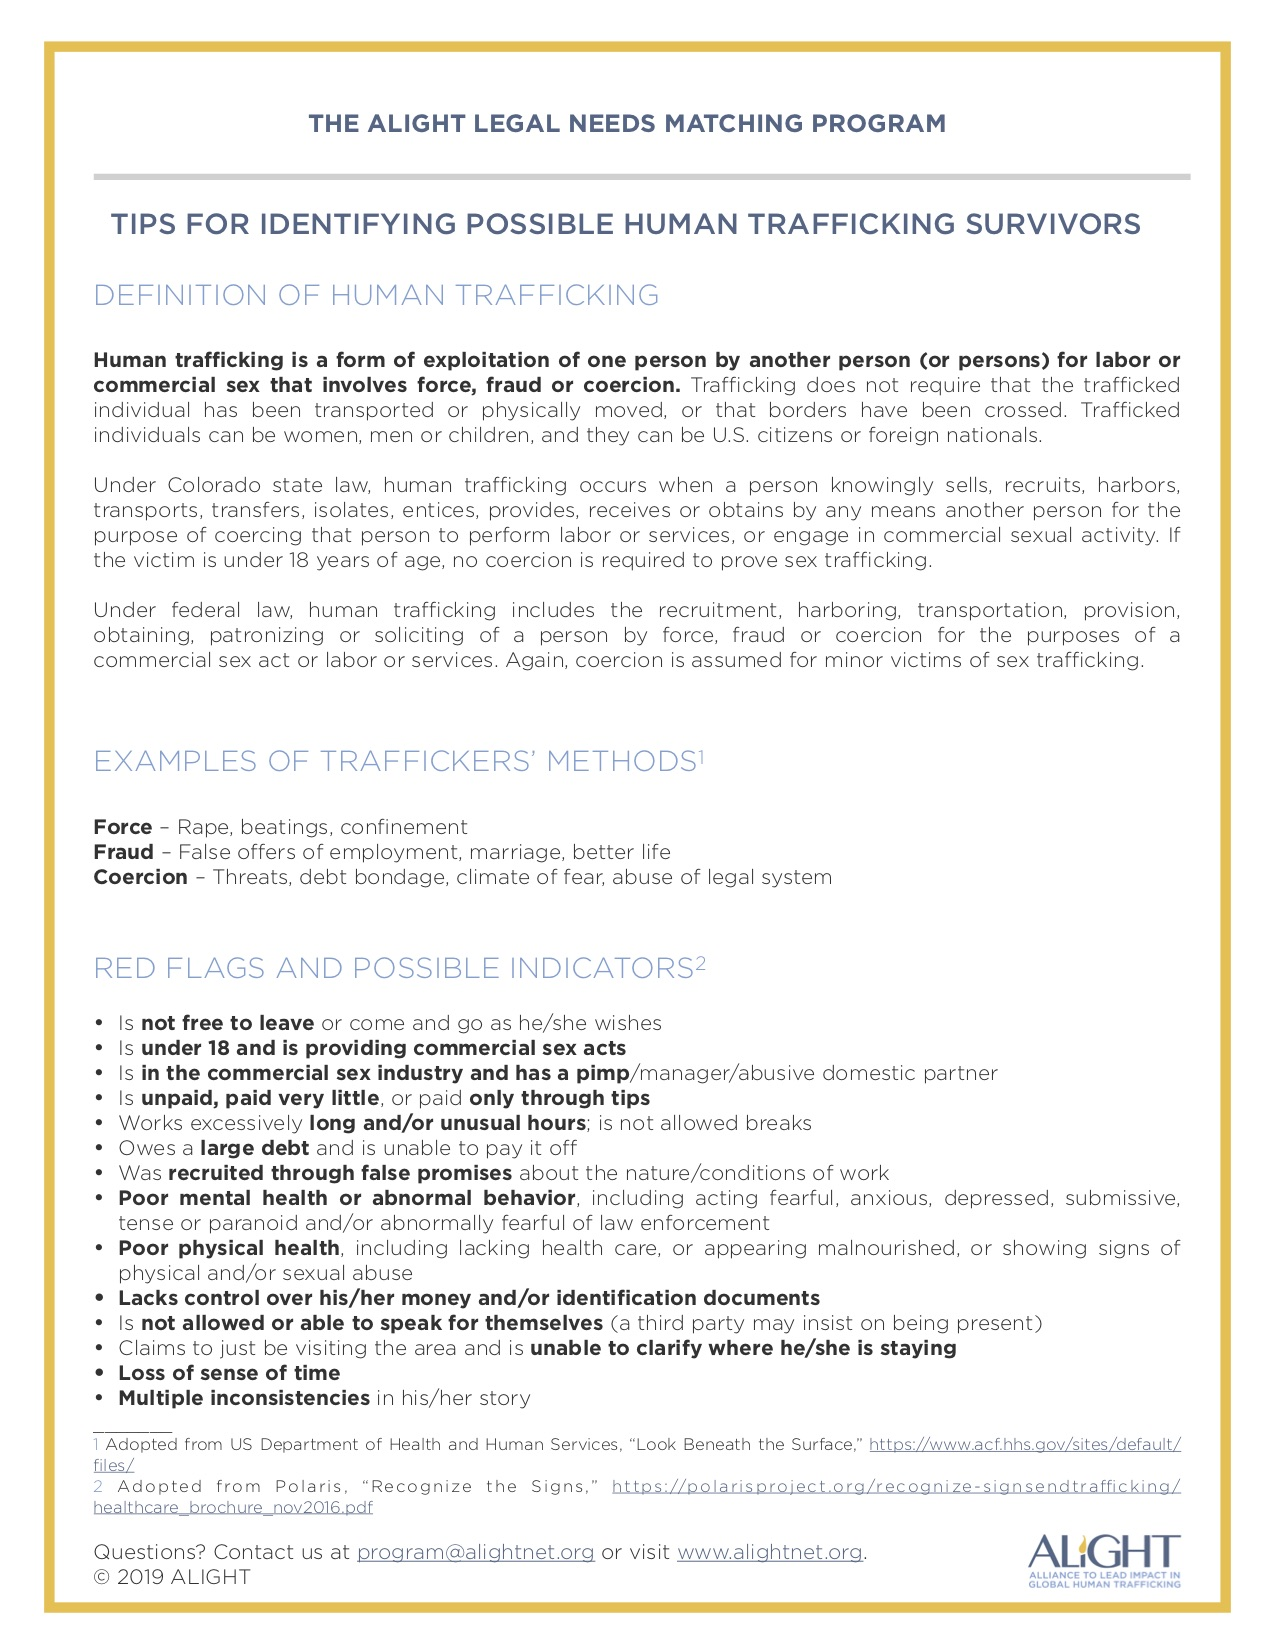 Tips for Identifying Possible Human Trafficking Survivors